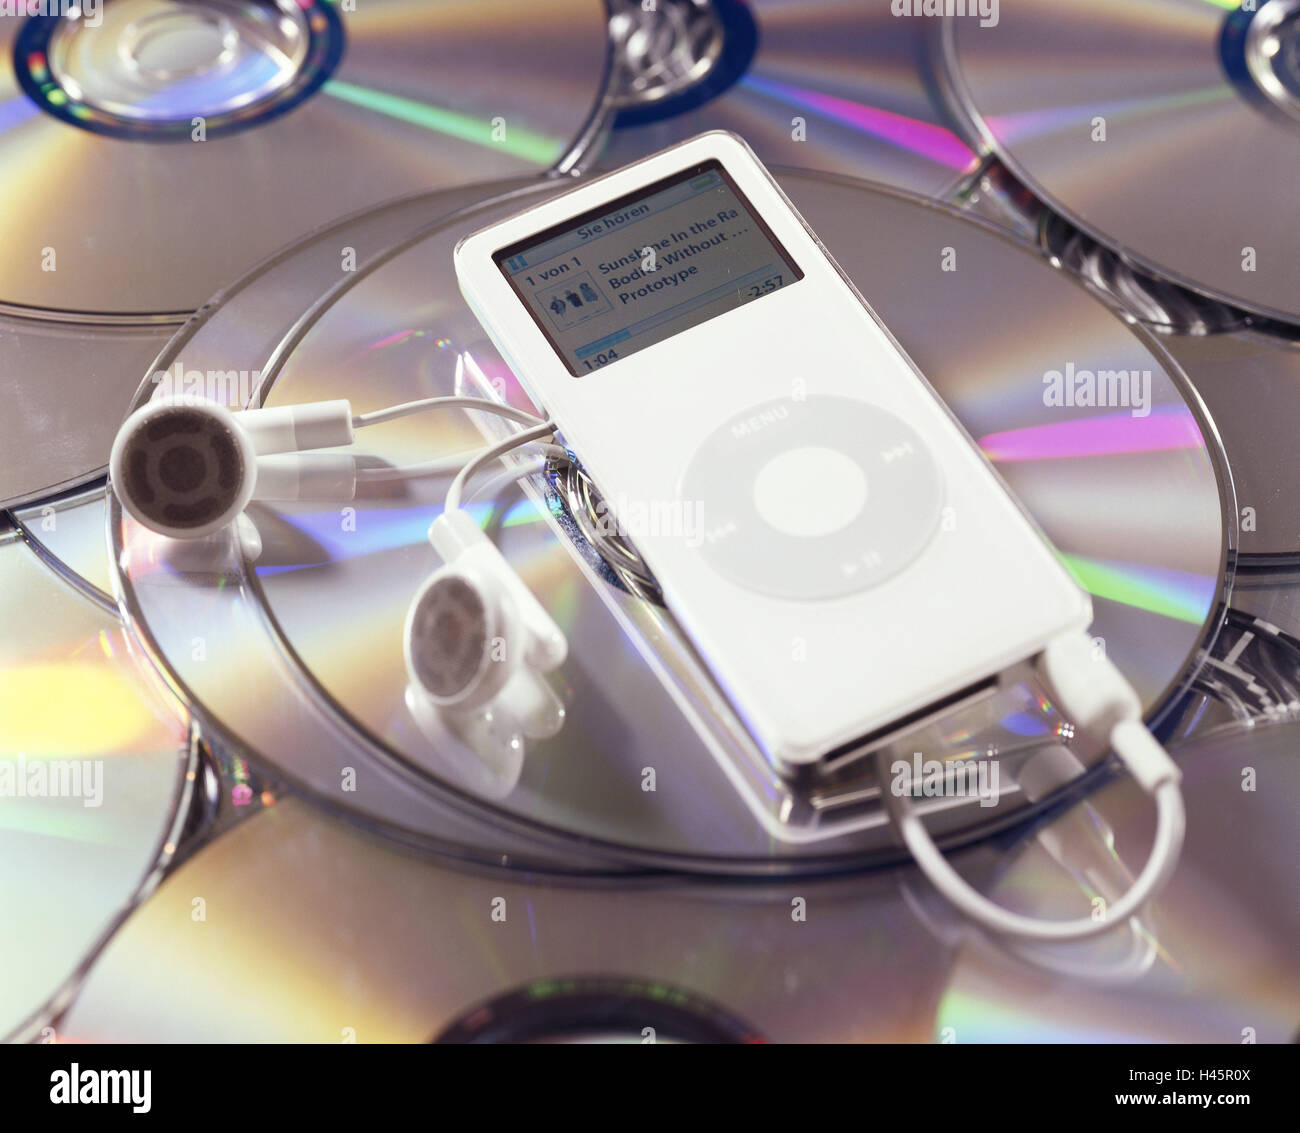 iPod nano, knows, Display, menu-point, music, music-titles, ear-listeners, play CDs, multiplicity no property release - Stock Image